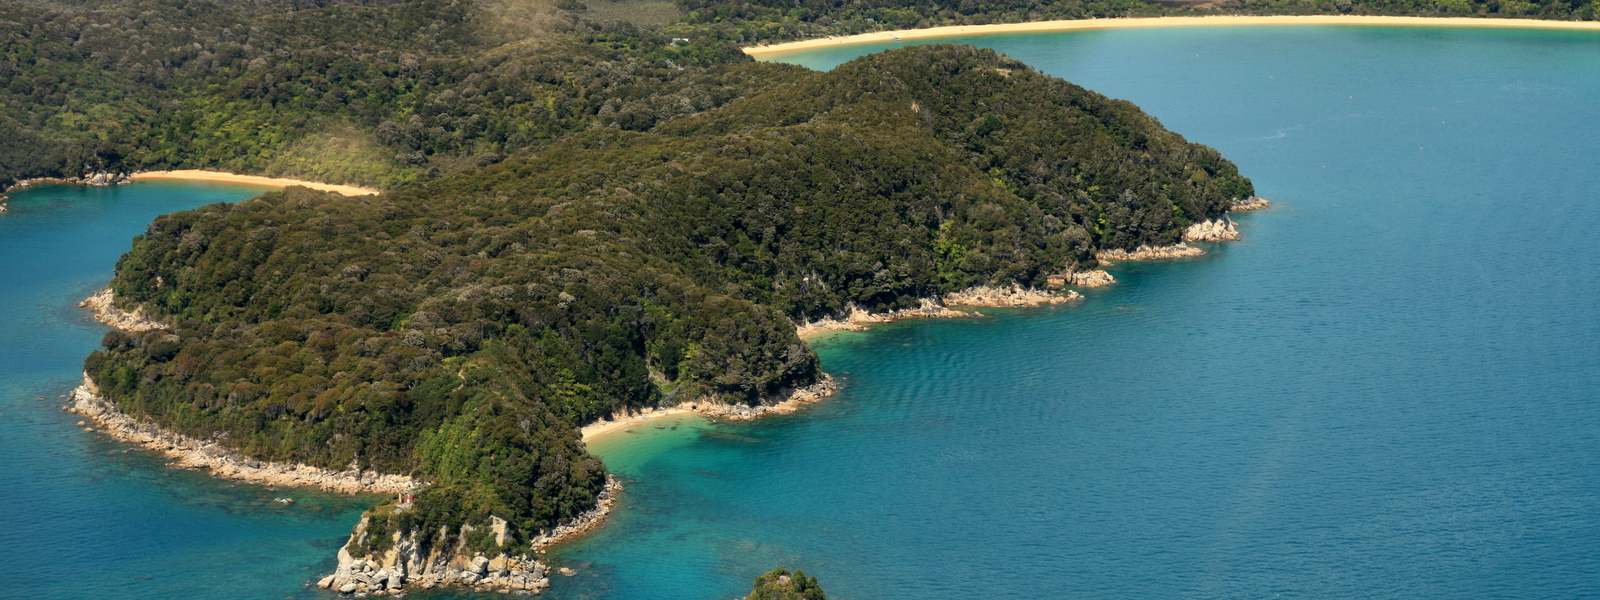 View the Abel Tasman from the air on a scenic flight or by luxury helicopter.  Thrill seekers - try parachuting.